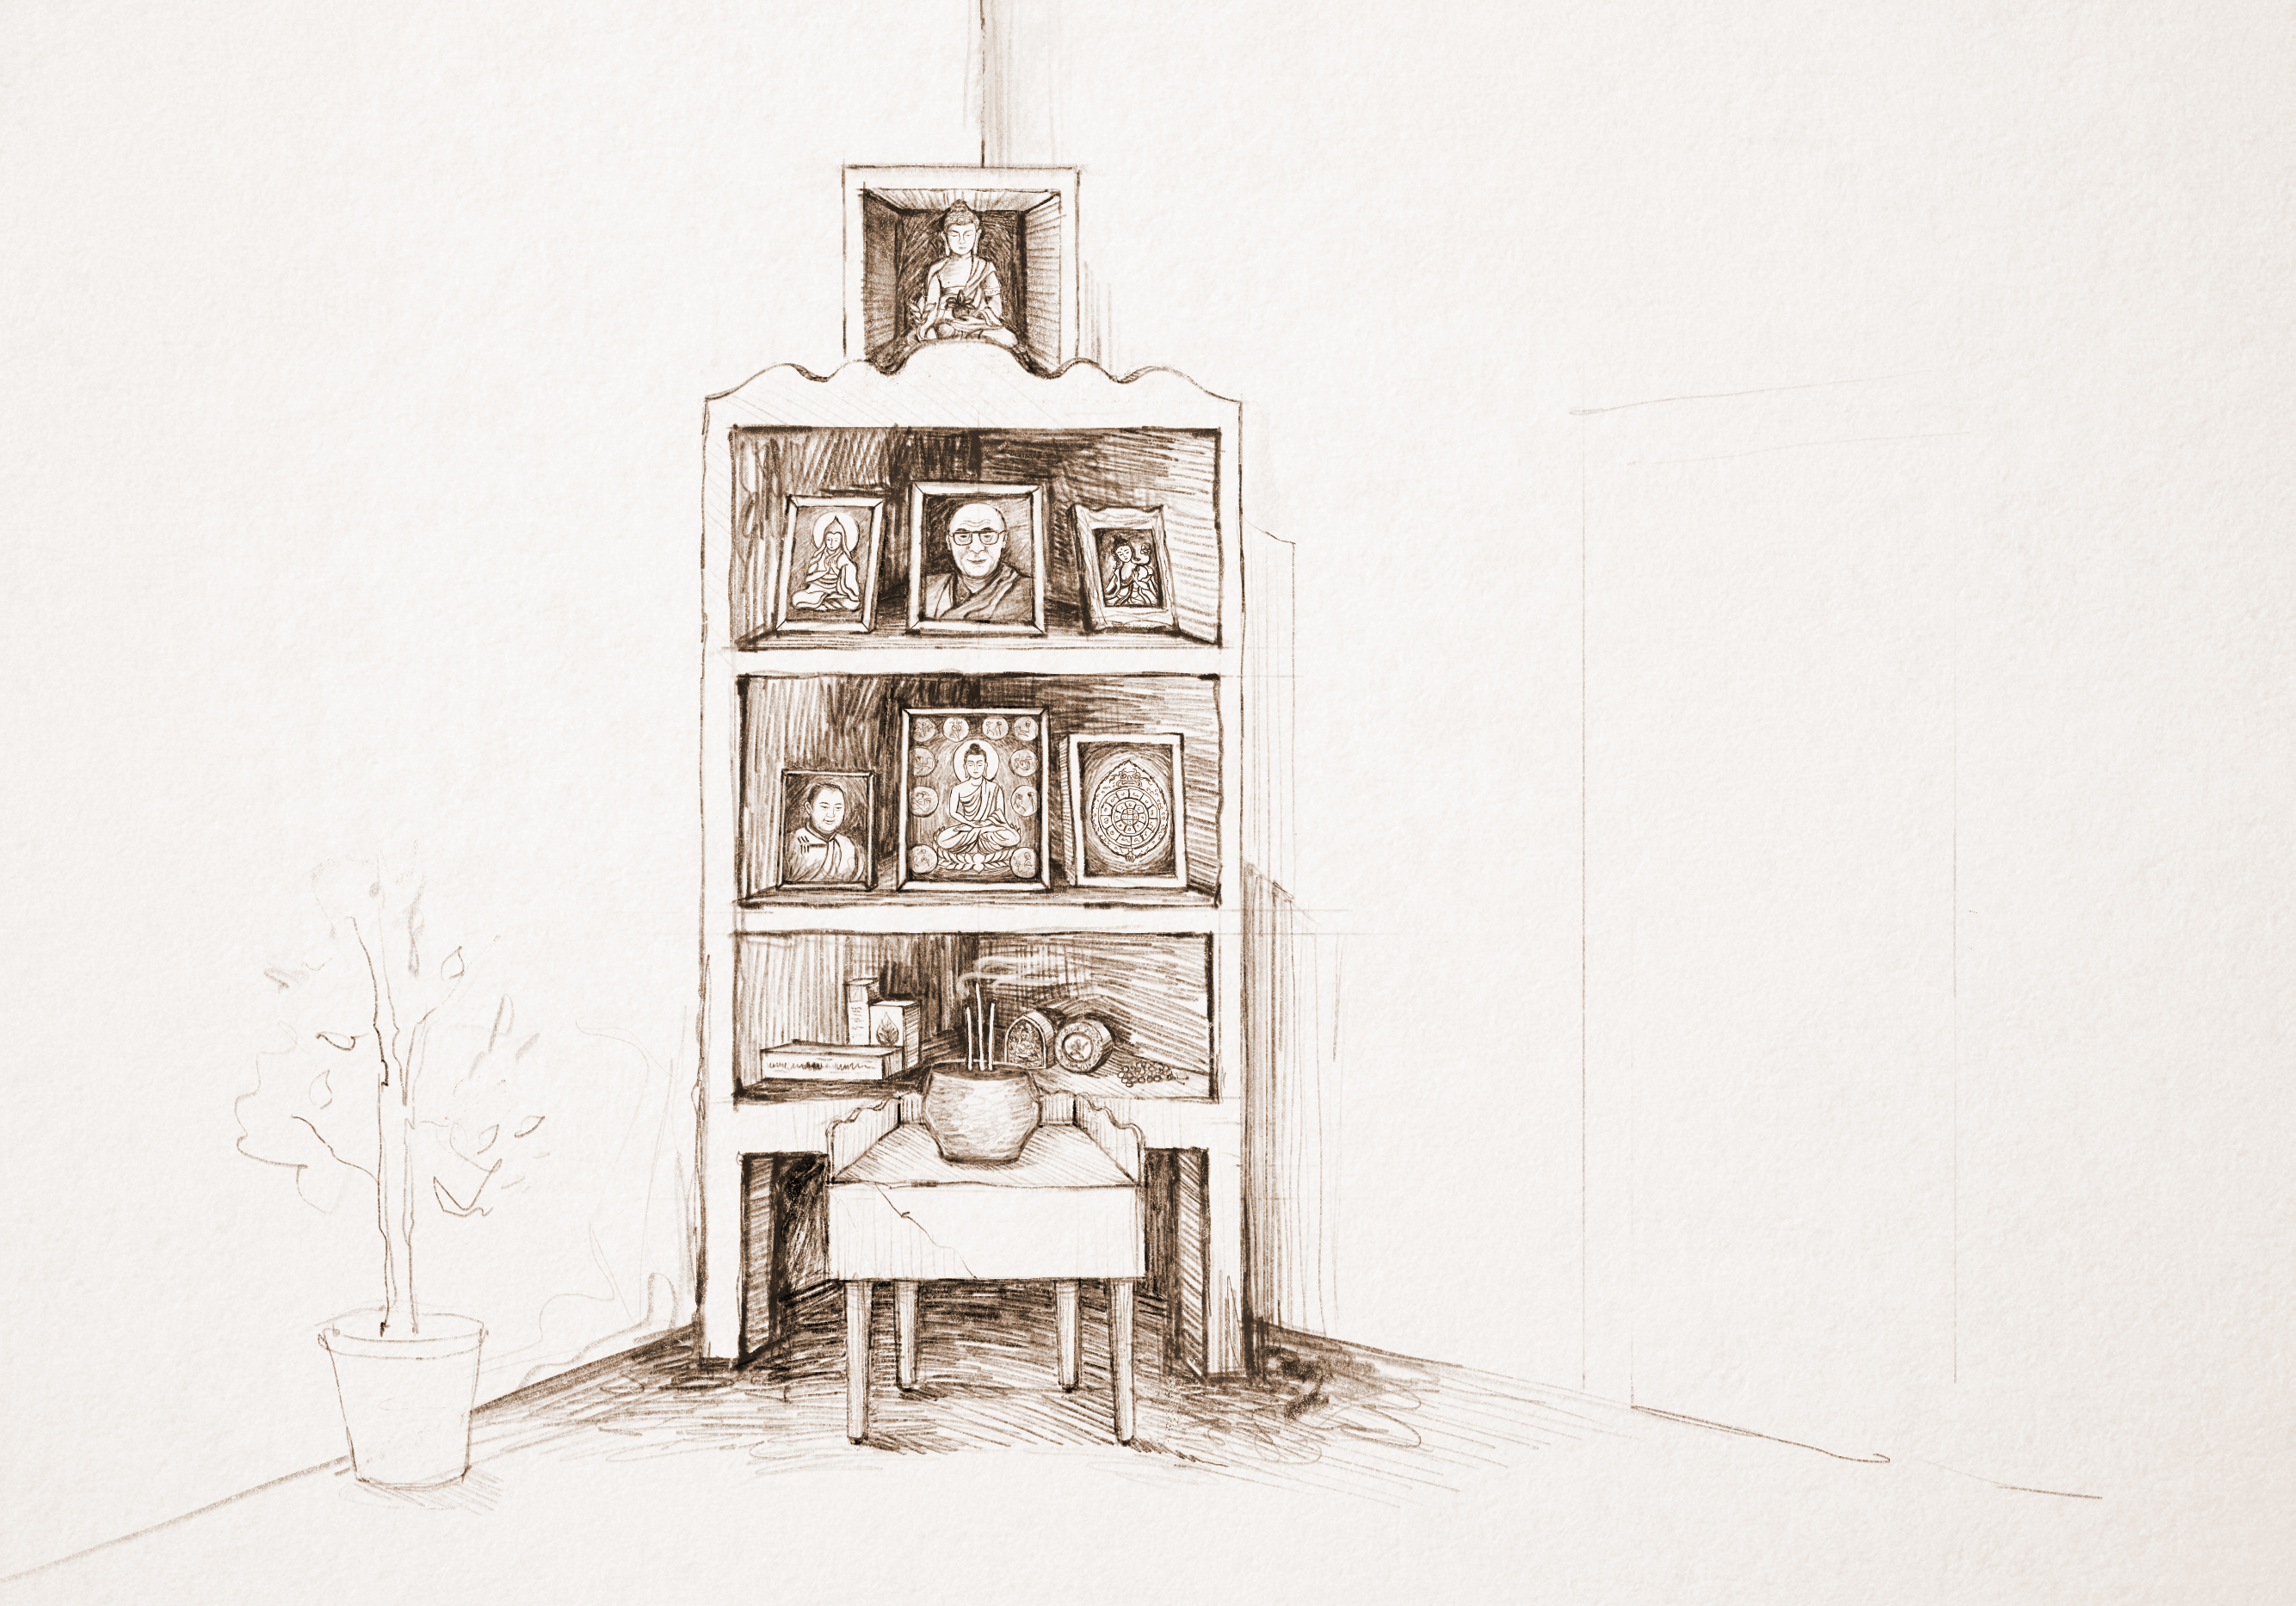 A sketch of our family's altar in my childhood home. On the top was the Medicine Buddha statue I prayed to for help to stop the rain. On the next level are framed photos of Lama Tsongkhapa, His Holiness the Dalai Lama and Green Tara. On the level after that are framed photos of the previous Telo Rinpoche, the life story of Buddha Shakyamuni and Sipa Khorlo, an astrological symbol that all married Mongolian couples have in their homes for good luck. Click to enlarge.